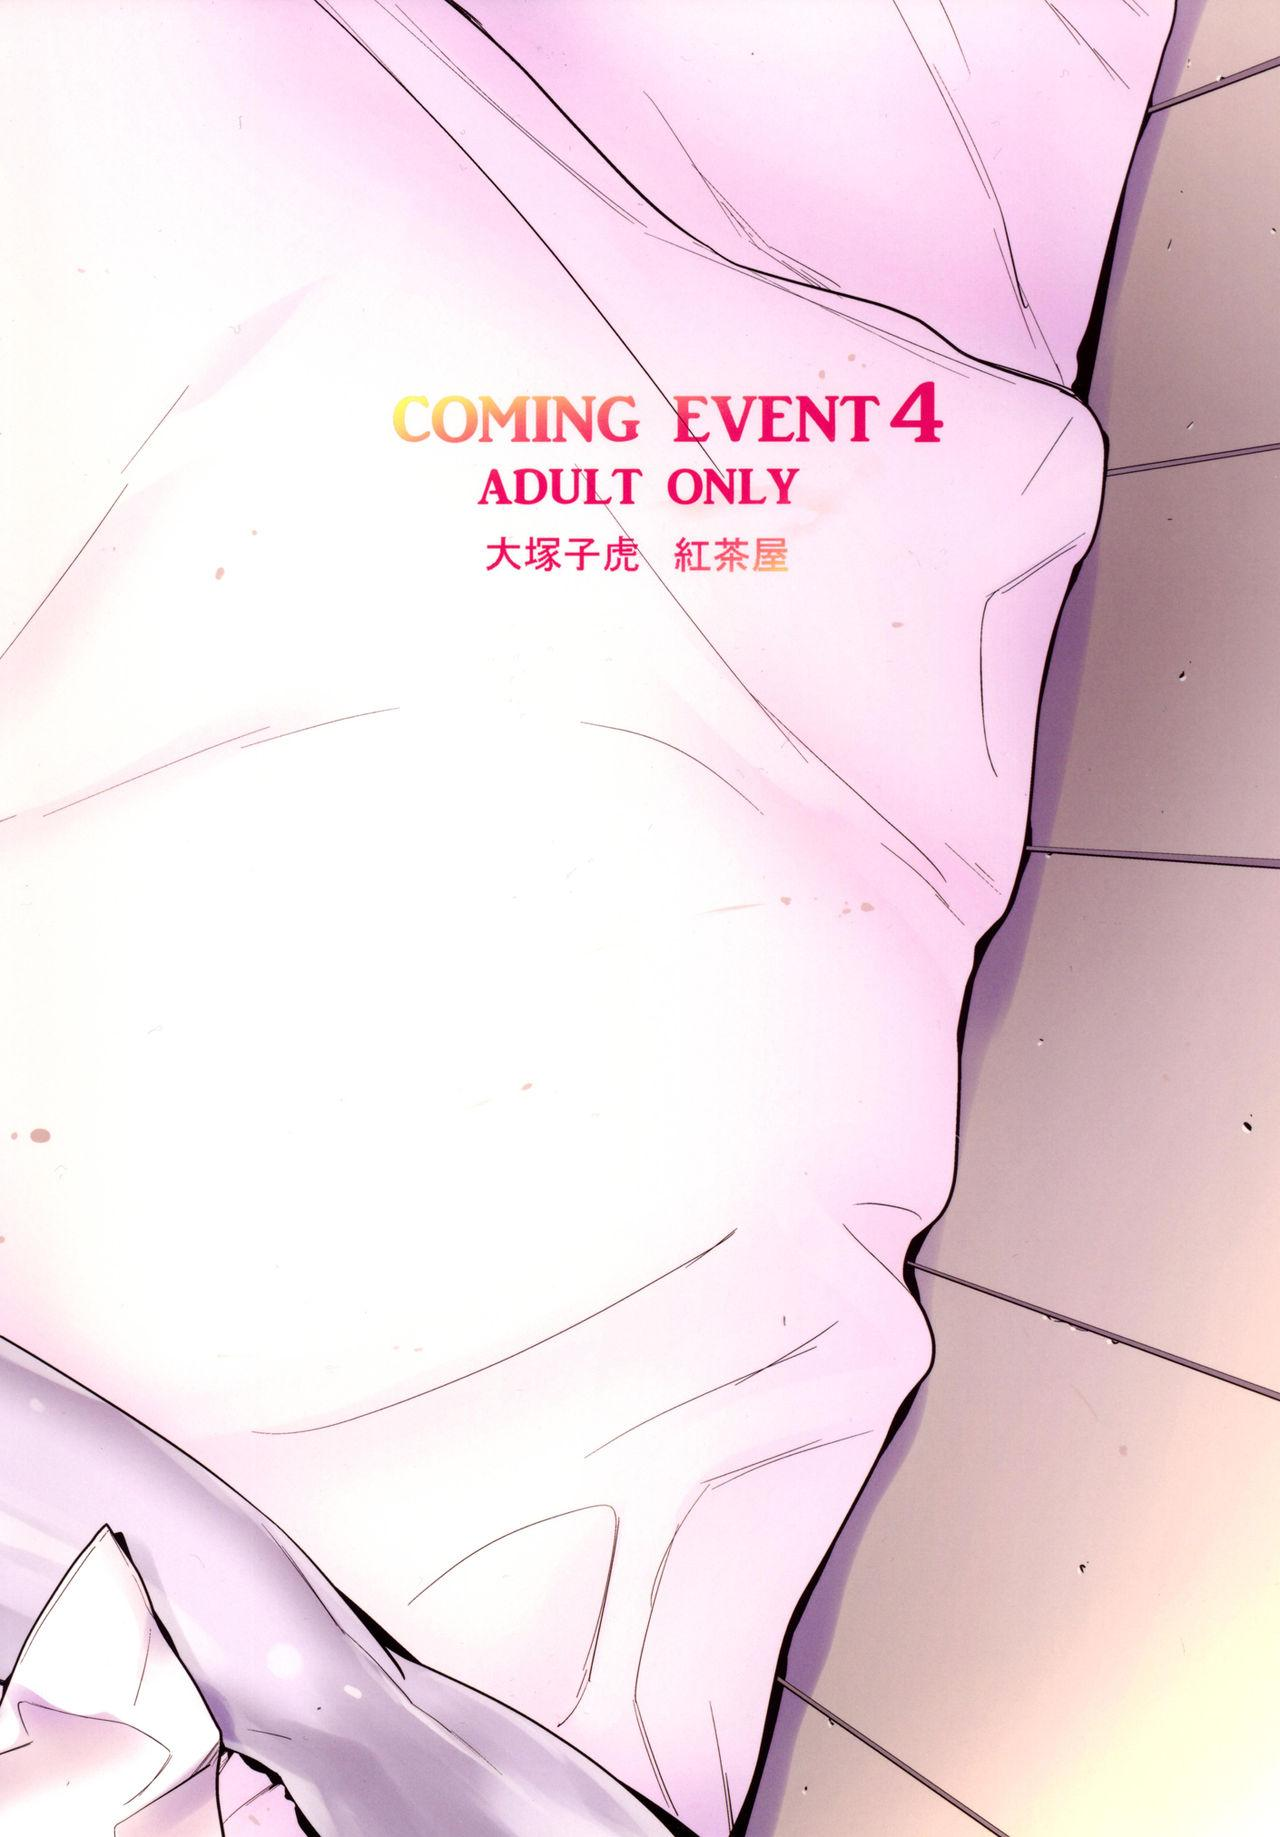 COMING EVENT 4 29